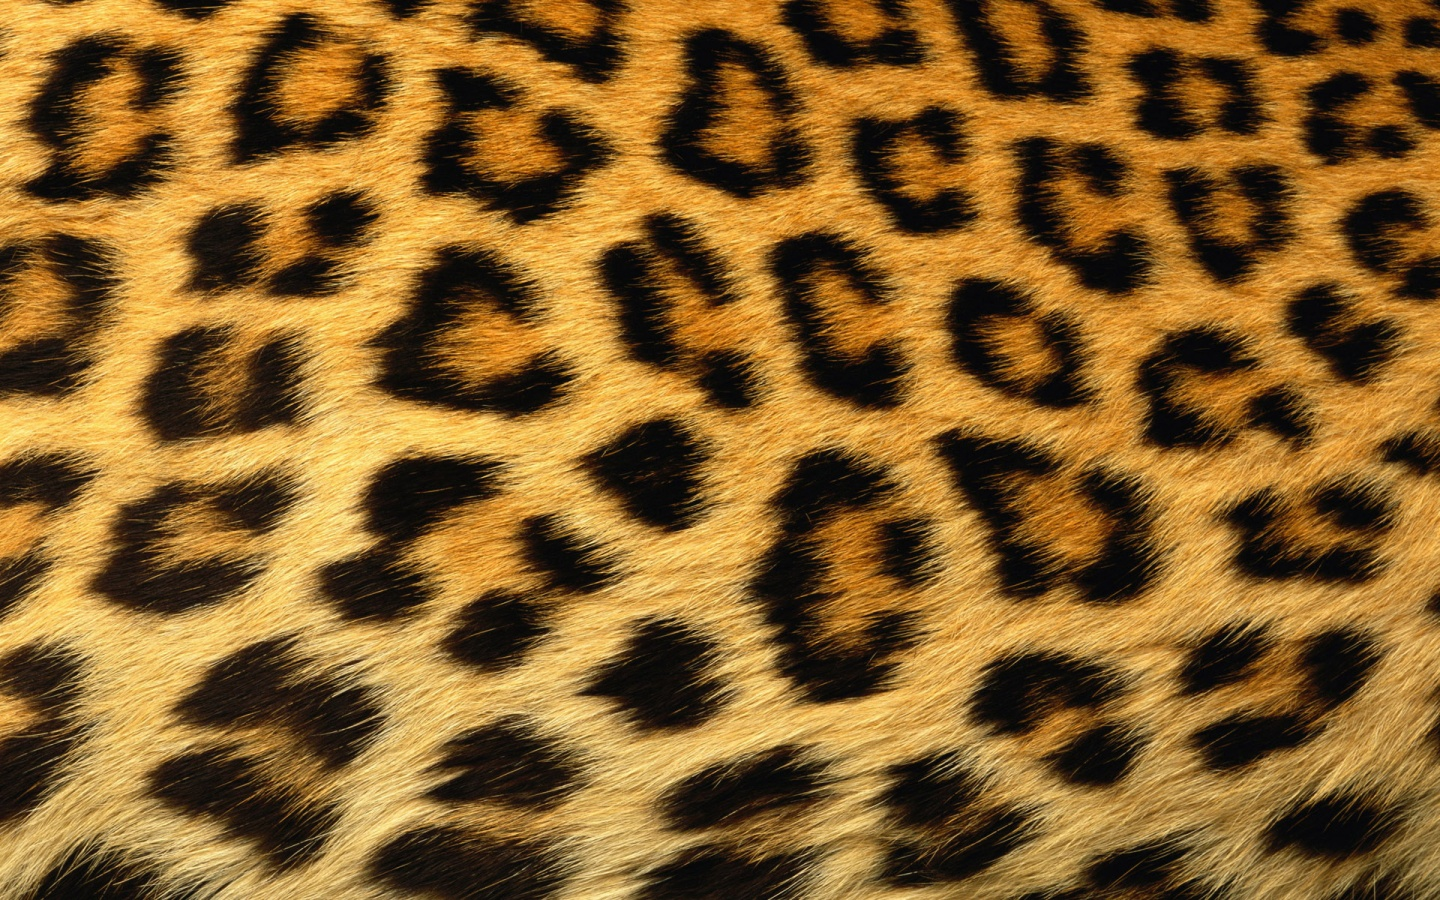 Leopard Print Background X Images at Clkercom 1440x900